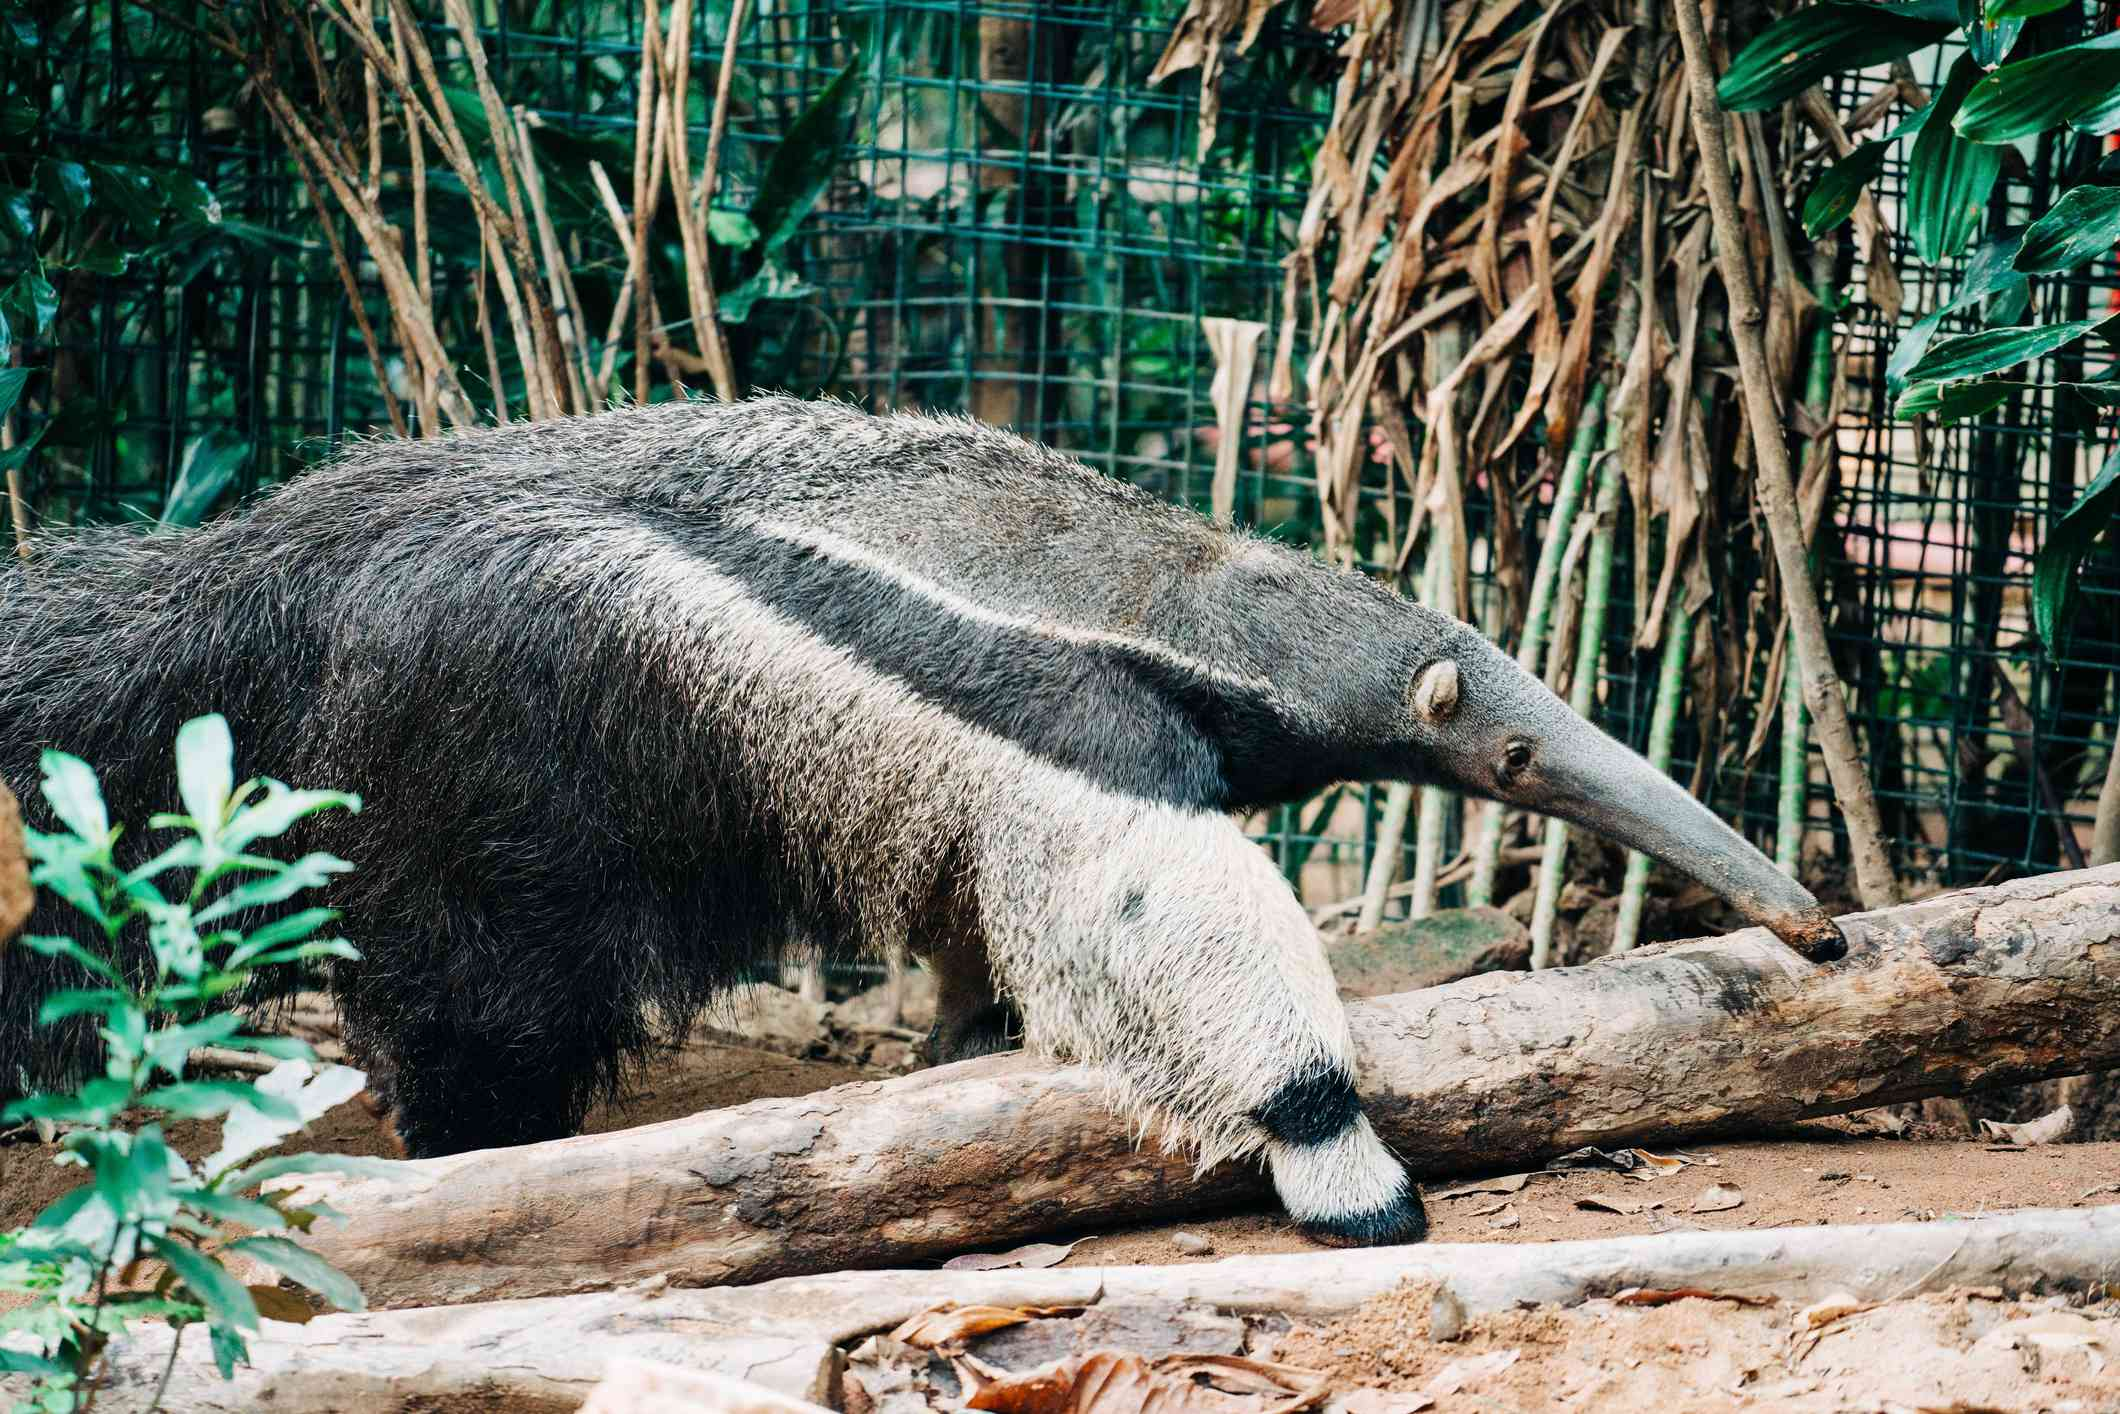 An Anteater in a zoo